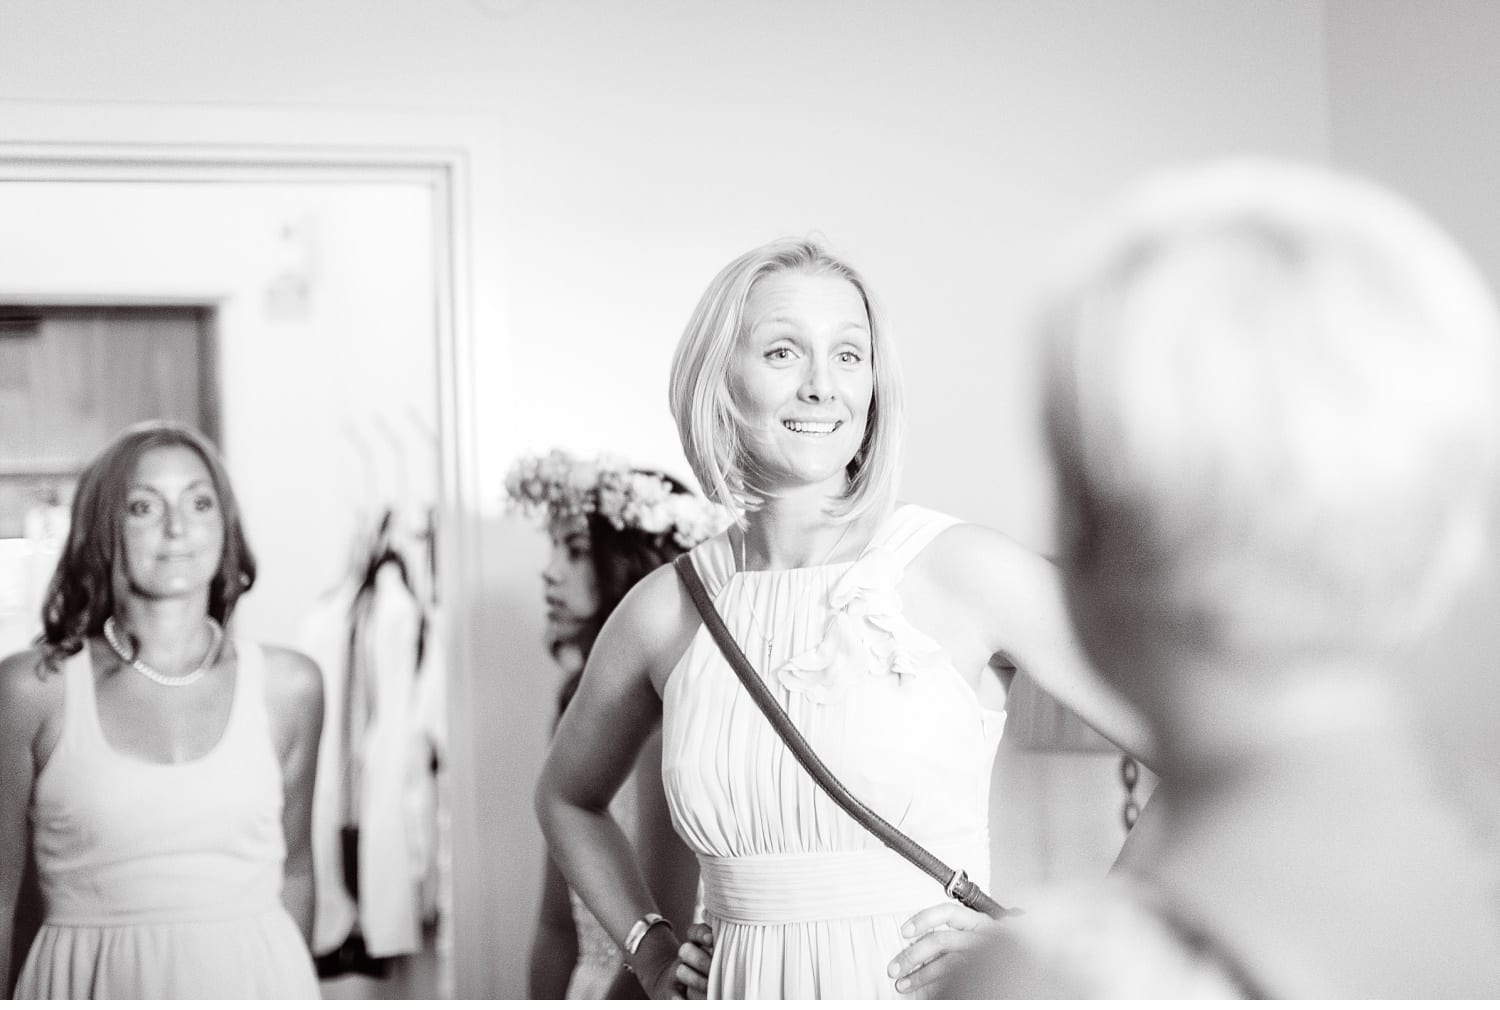 lisa kristoffer brollop uppsala wedding 28 - Lisa & Kristoffer wedding